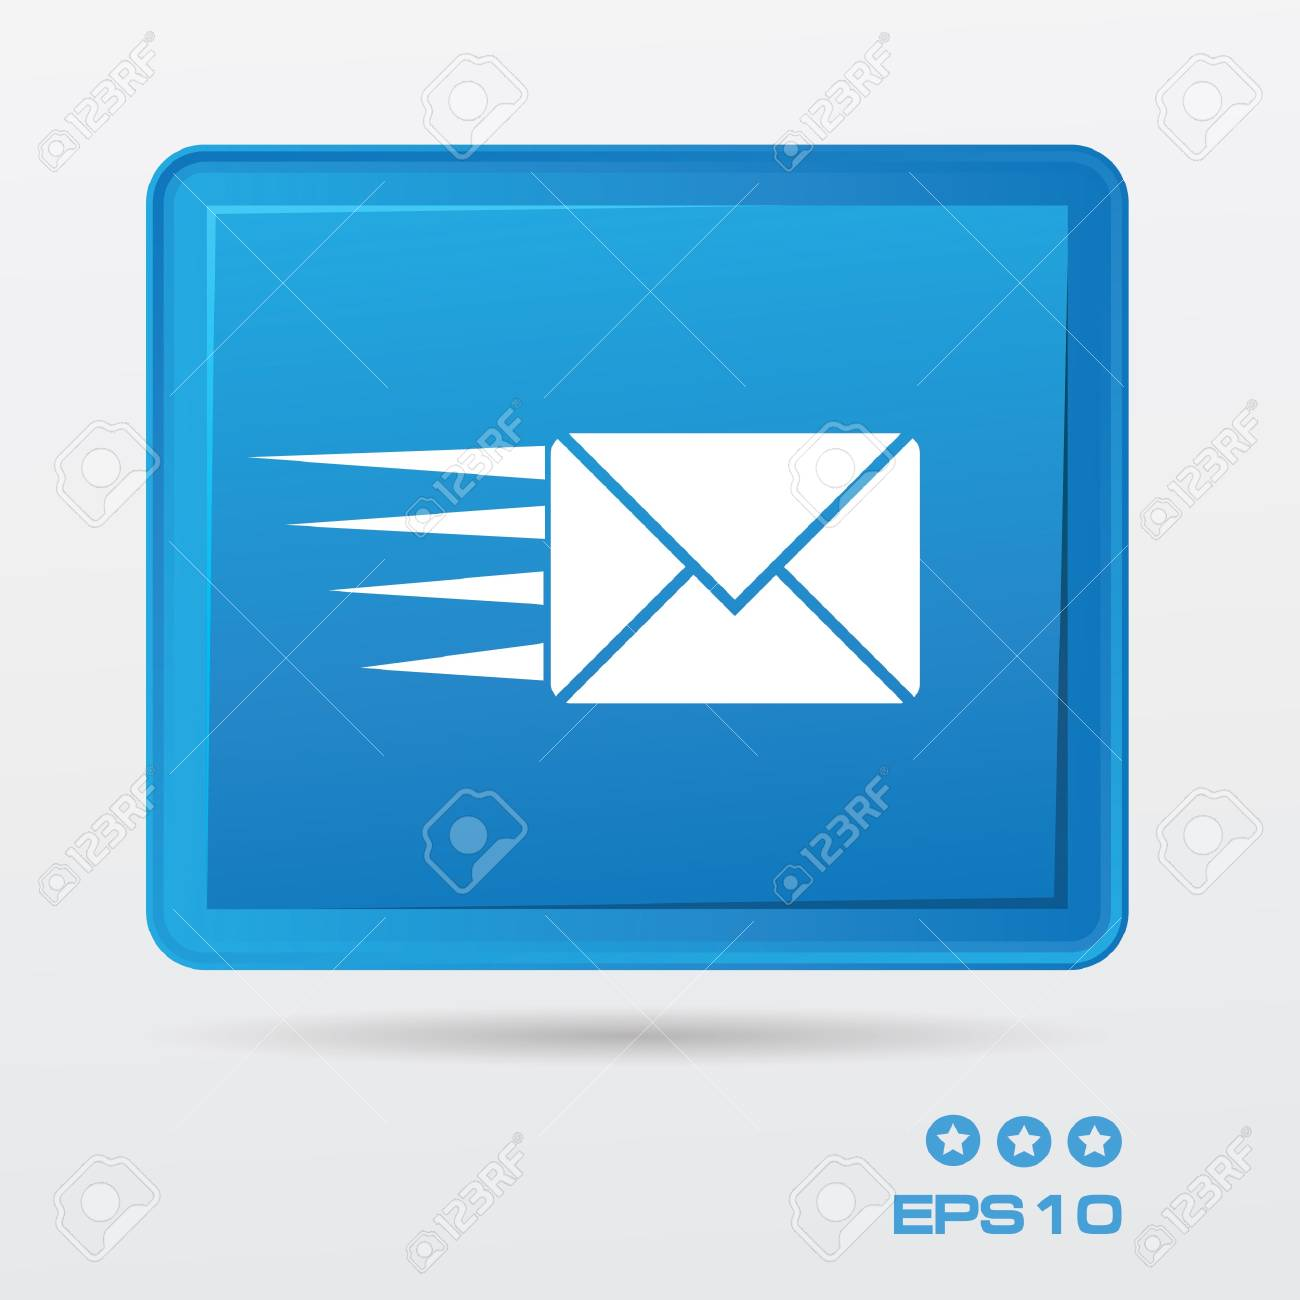 Email symbol Stock Vector - 20810779